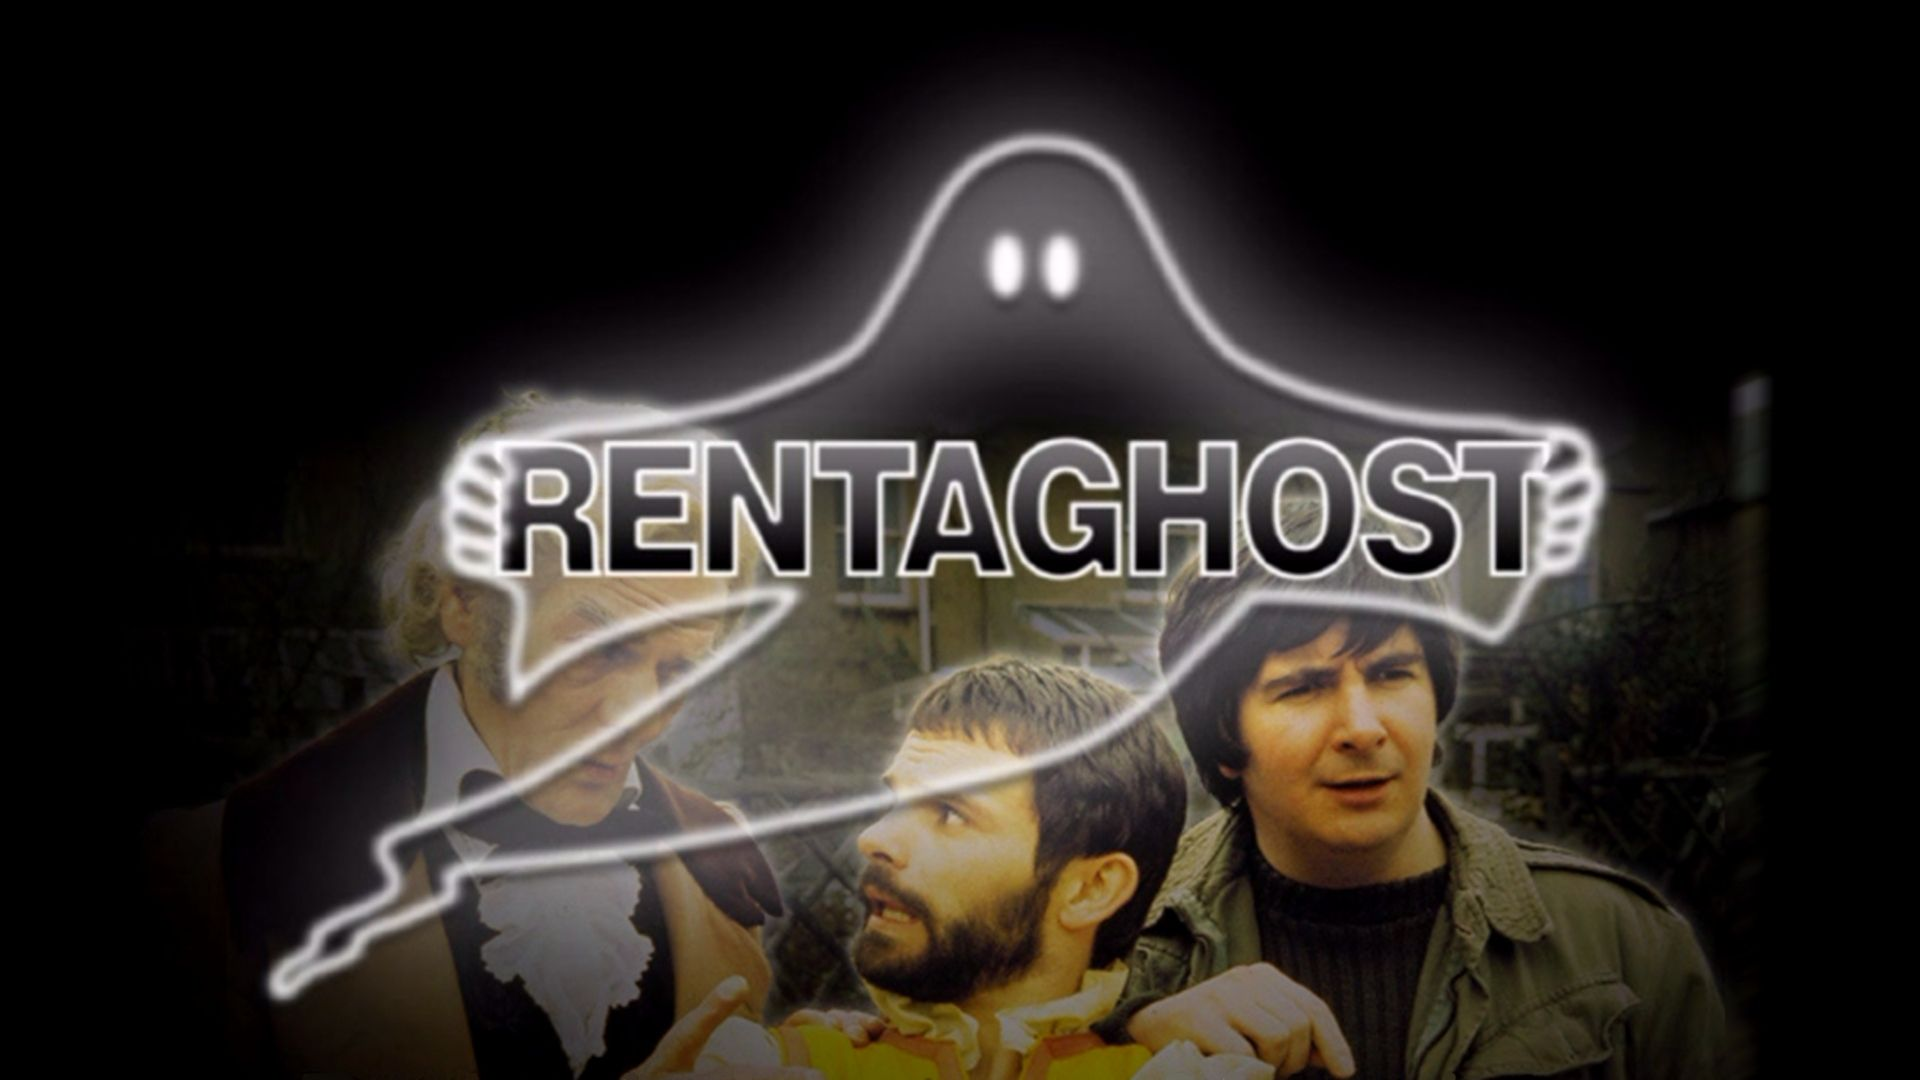 Season 05, Episode 01 Rentaghost Season 5 Episode 1